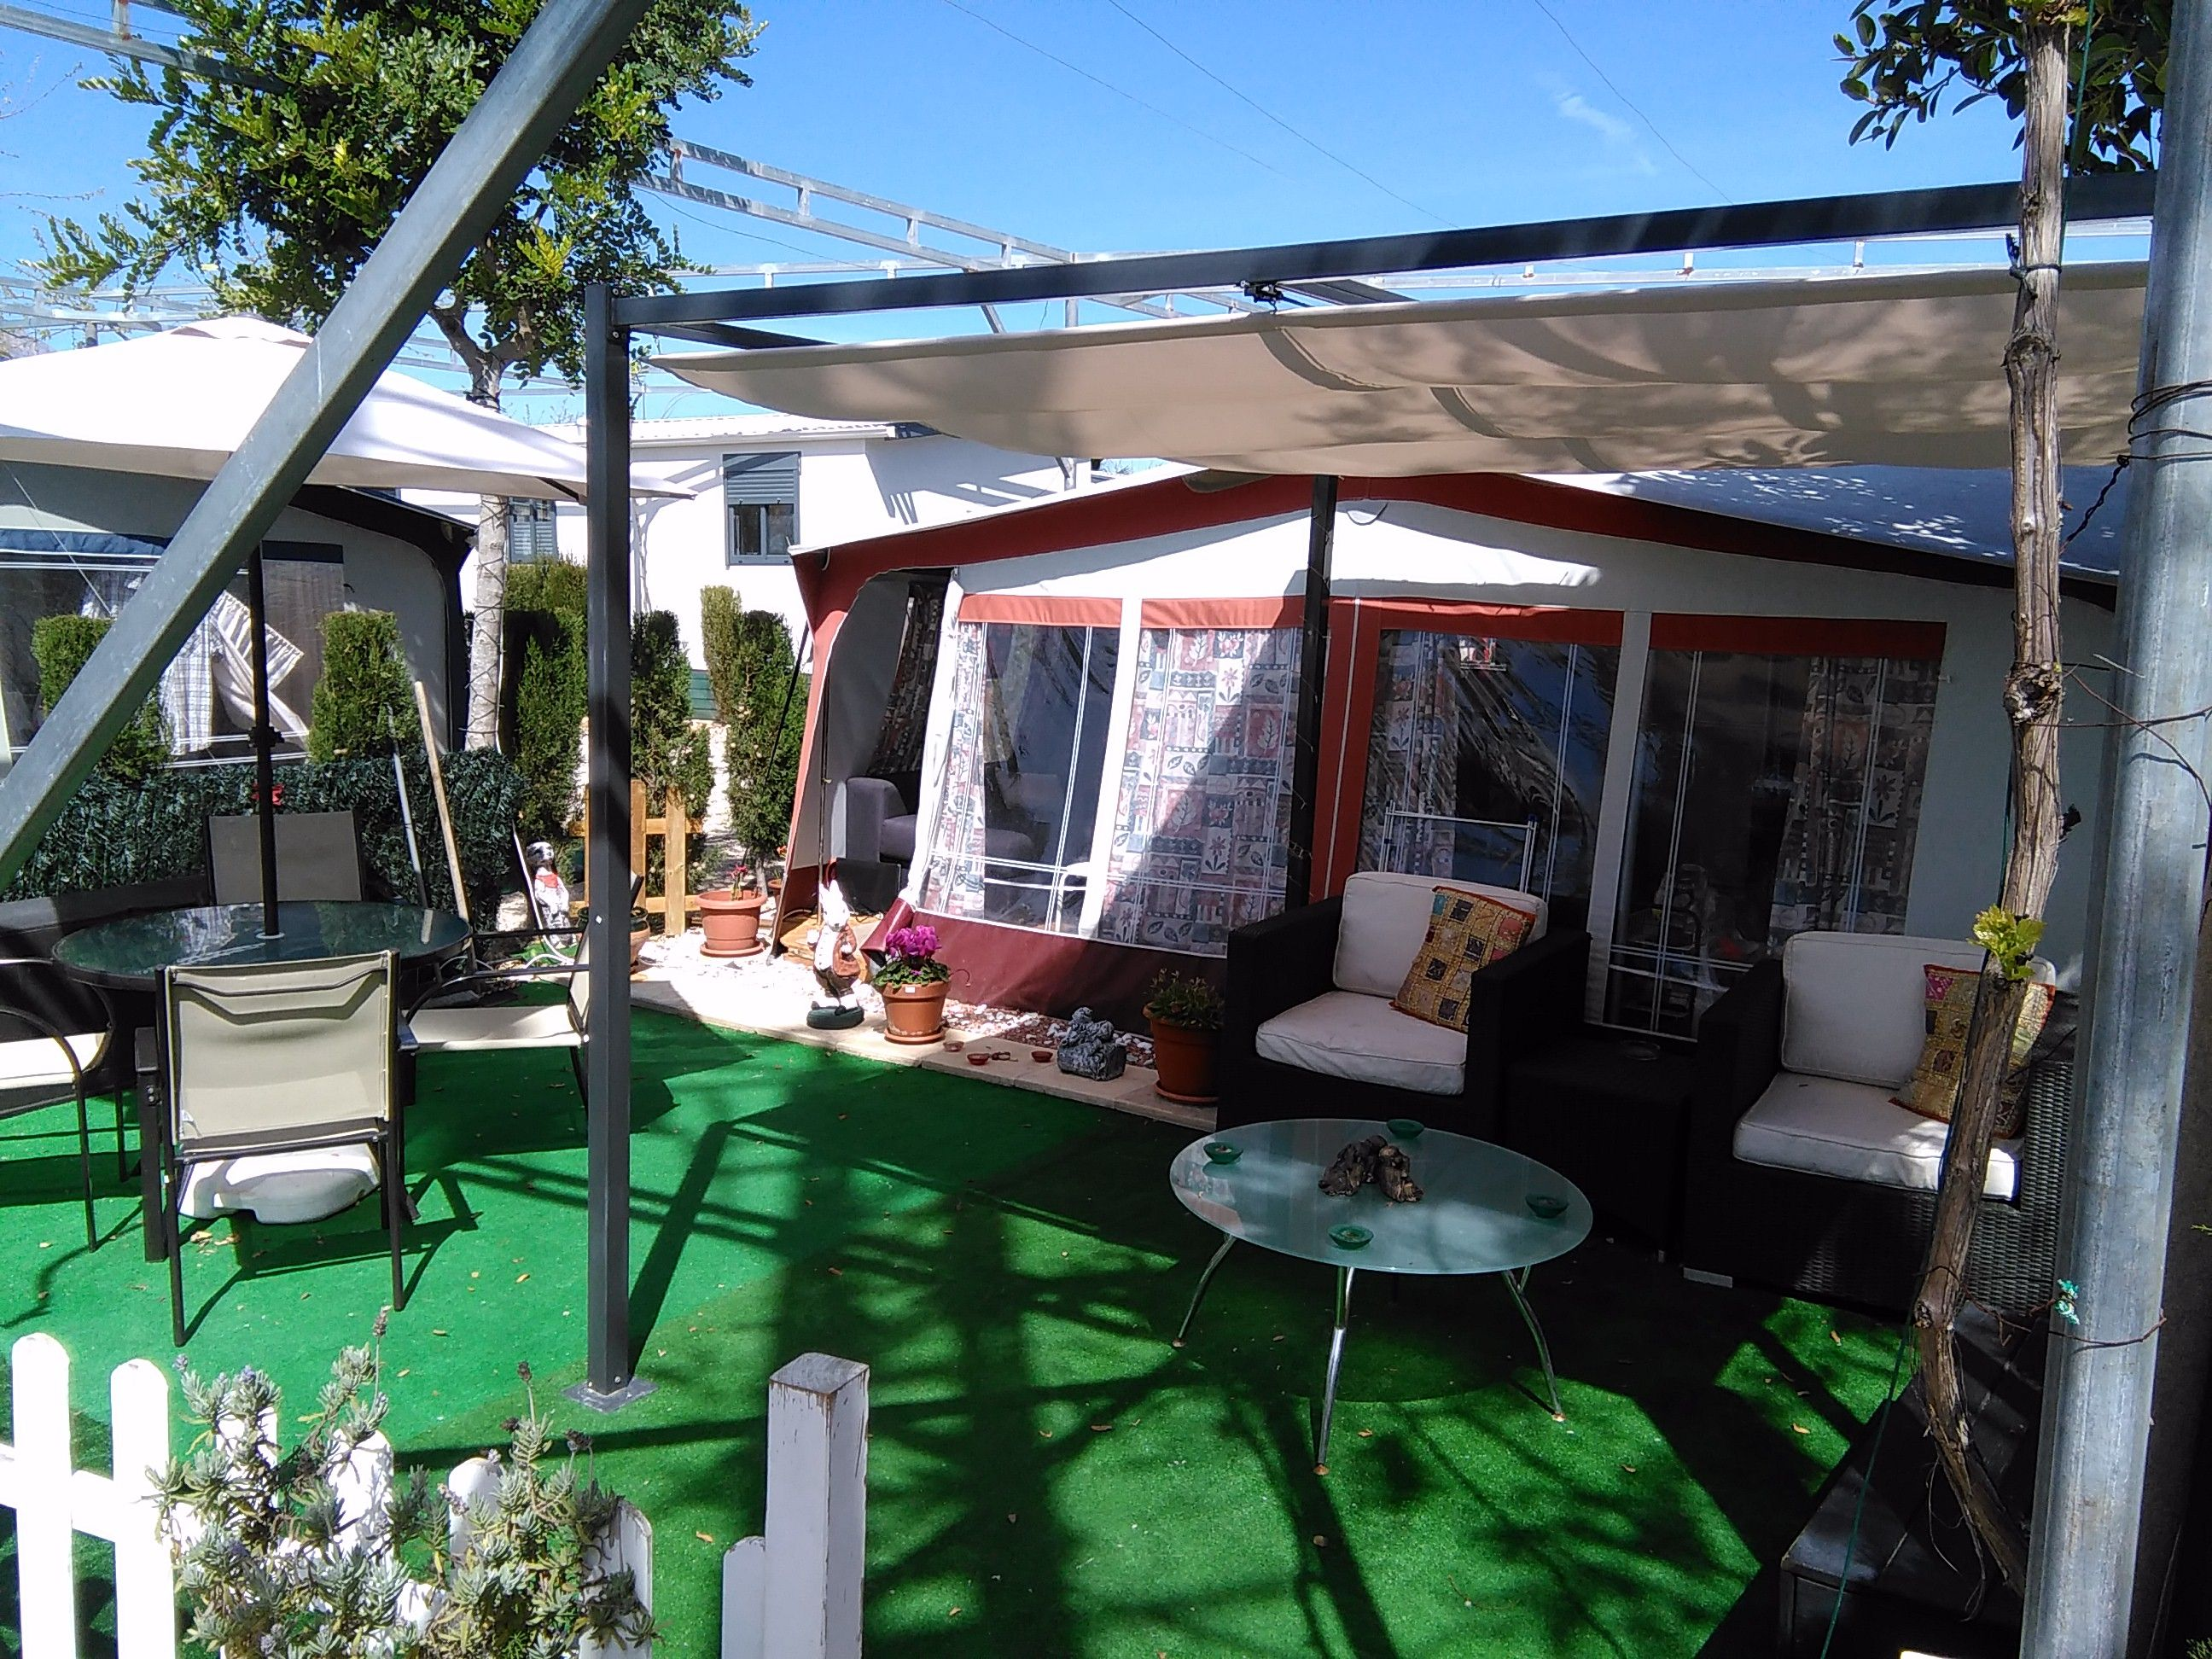 enclosed trailer home sale att awning photo abowloforanges lovely com x of for